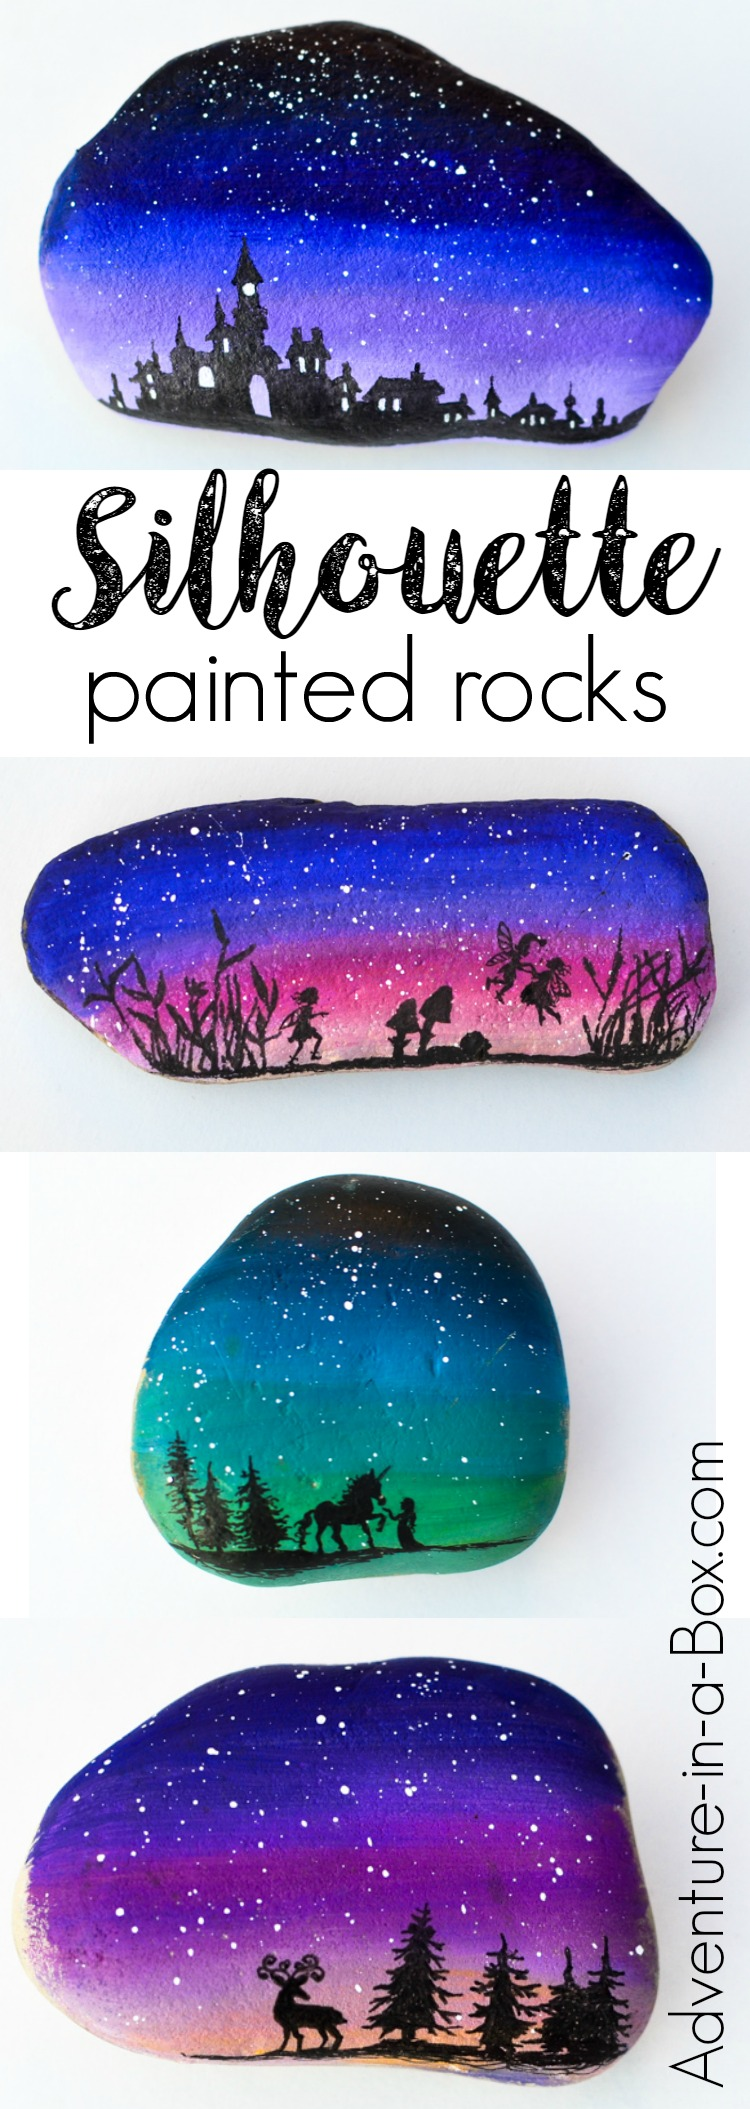 Decorate rocks with elegant landscape silhouettes drawn over the starry twilight sky! Unicorns, fairies, and enchanted castles - you can do anything.Simple rock painting technique that even kids can master.